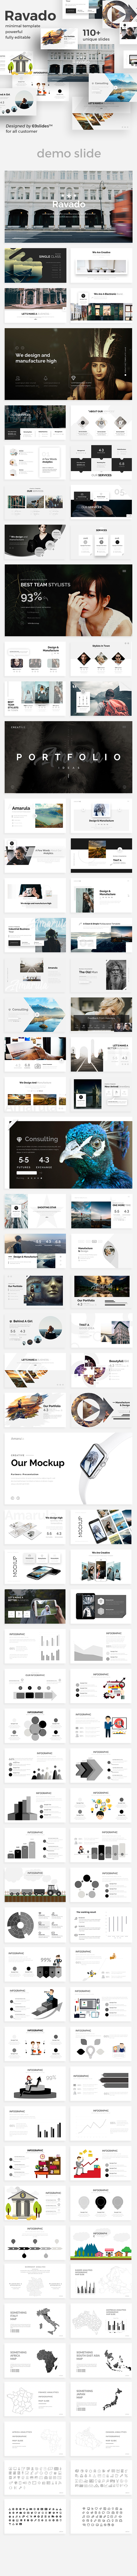 Ravado Creative Google Slide Template - Google Slides Presentation Templates